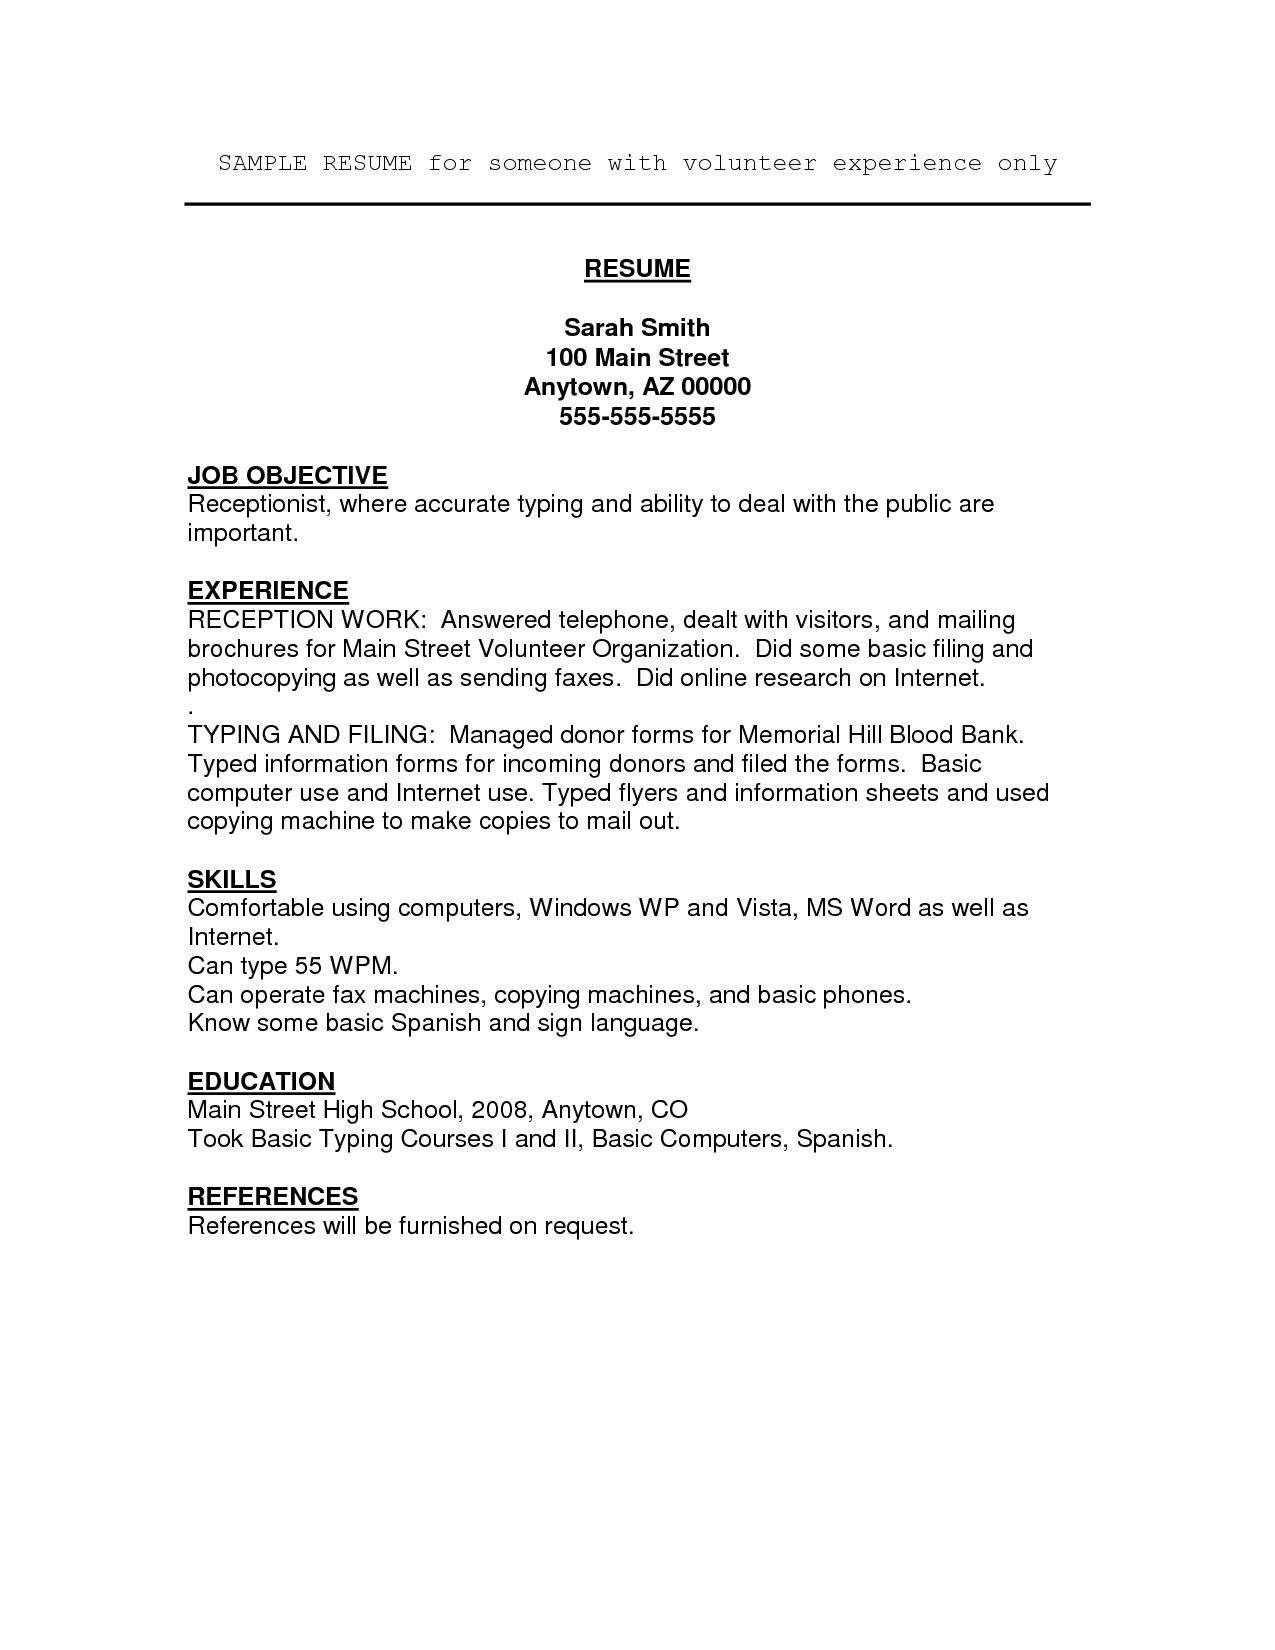 Example of volunteer work on resume